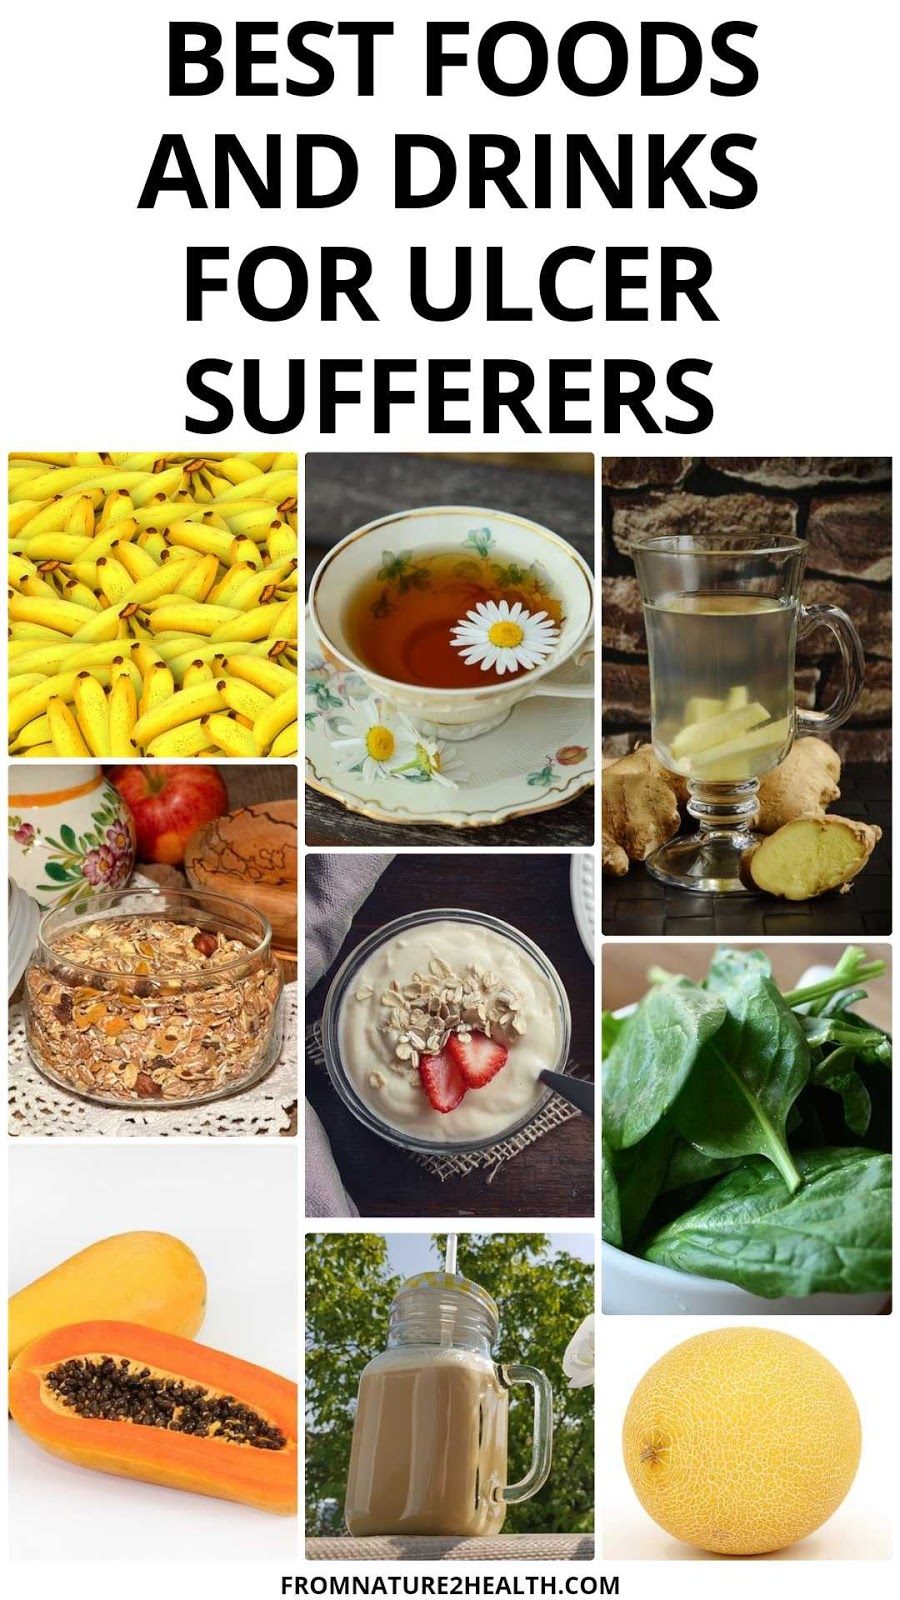 Best Foods and Drinks for Ulcer Sufferers